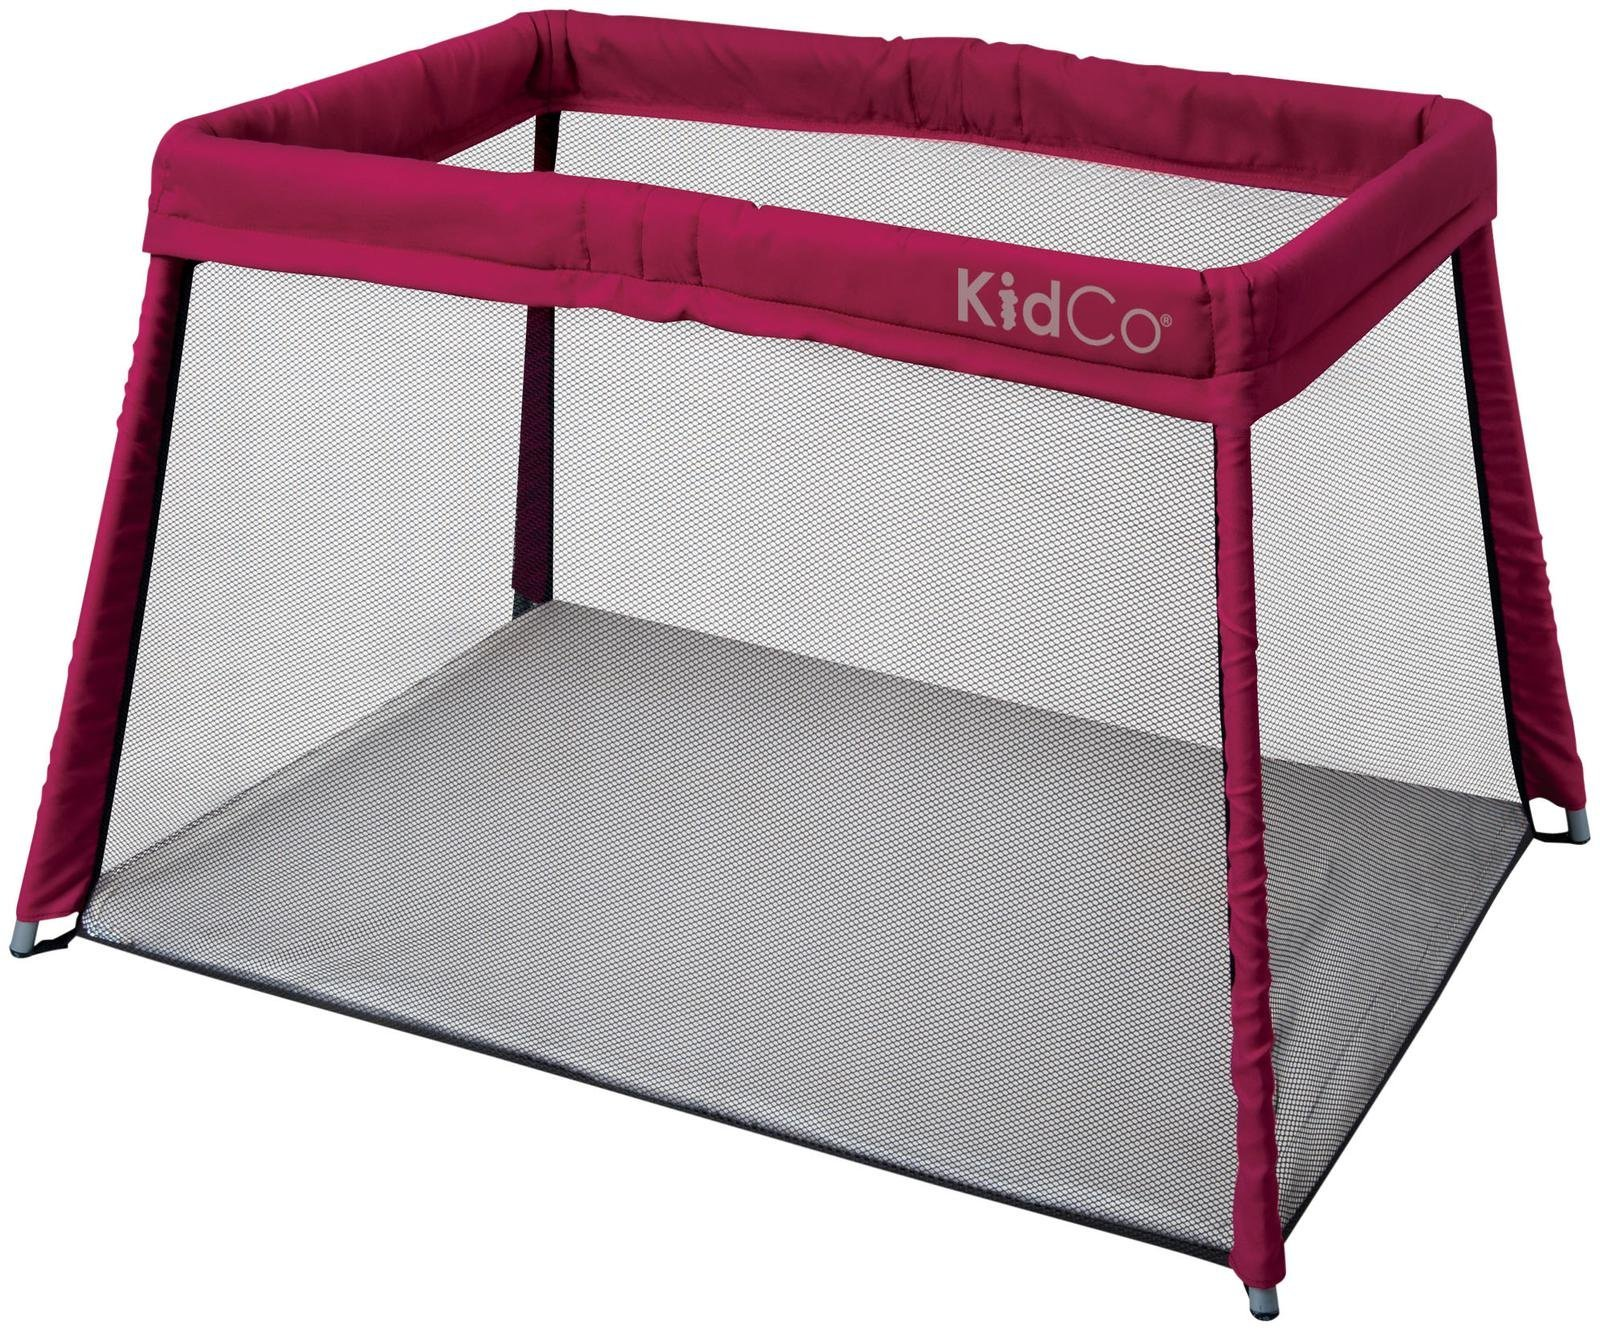 KidCO Travelpod Portable Bed, Cranberry by KidCo